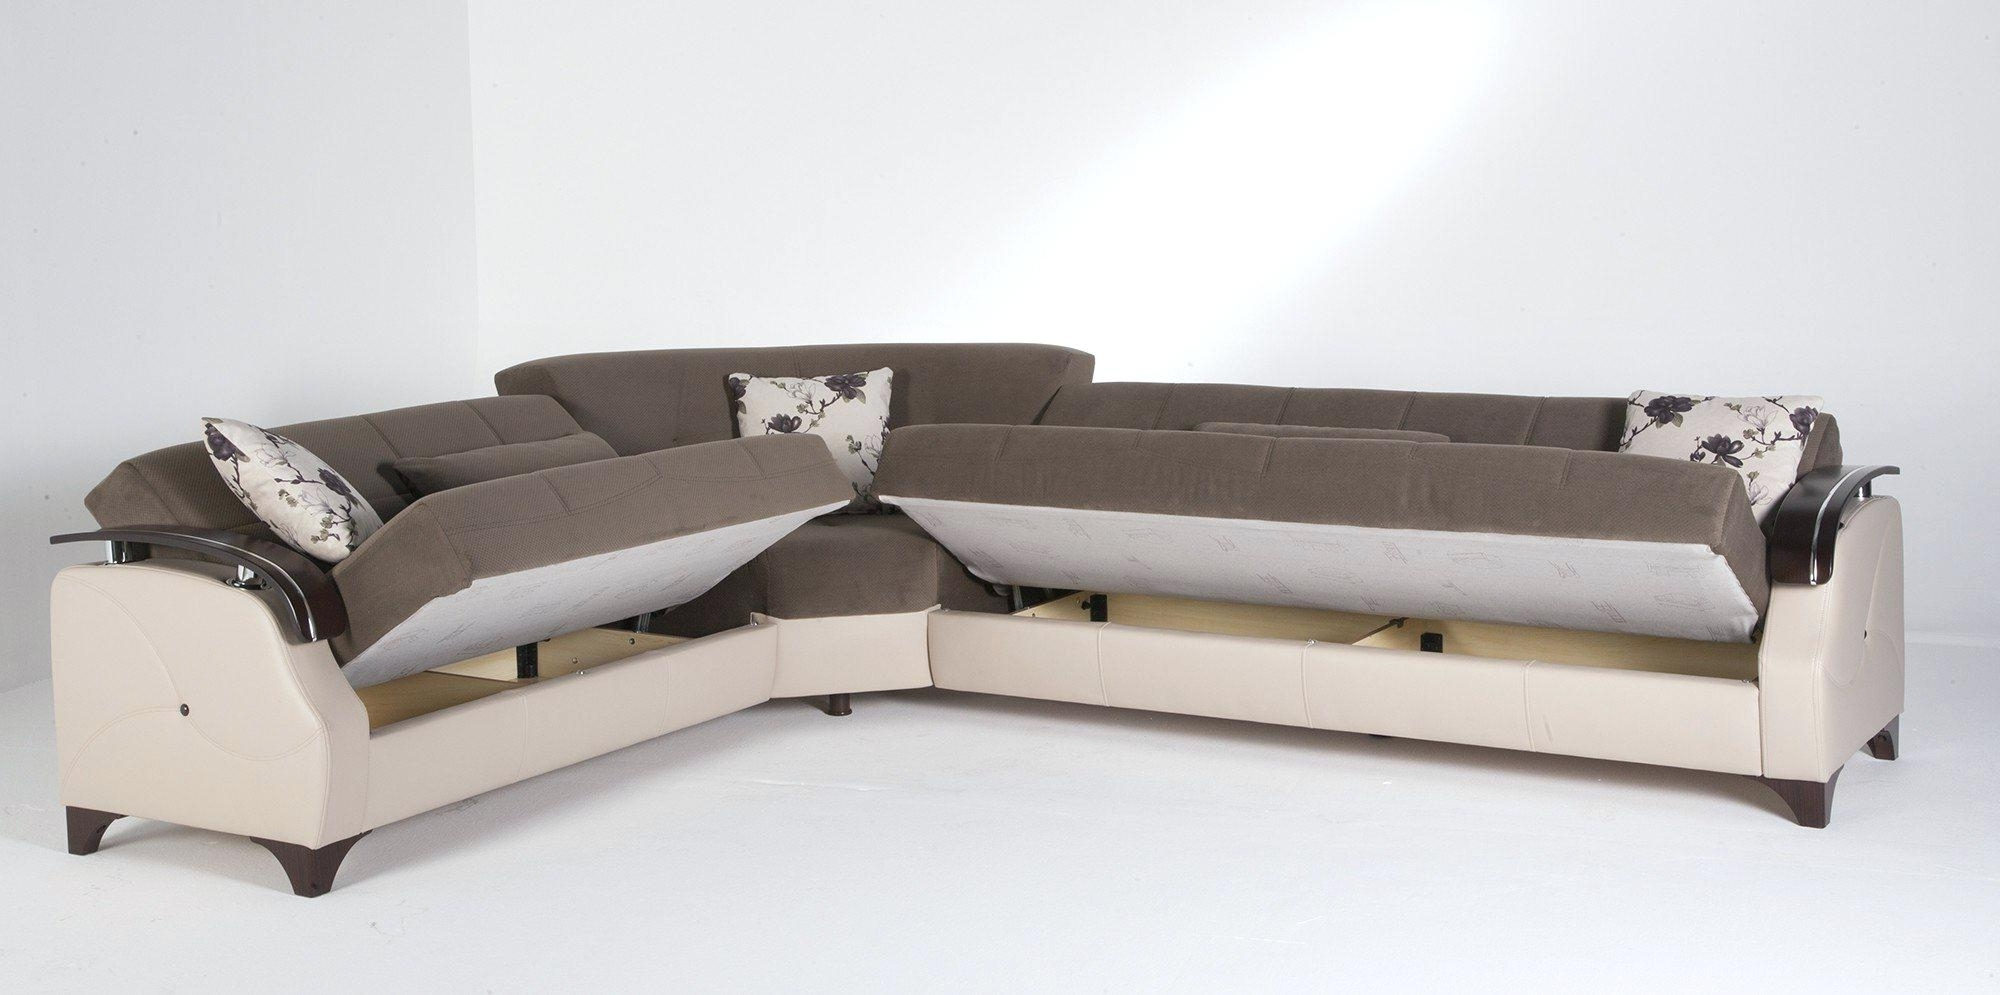 Recent Sleeper Sectionals Couches For Sale At Makro Sectional With In Reversible Chaise Sectionals (View 2 of 15)